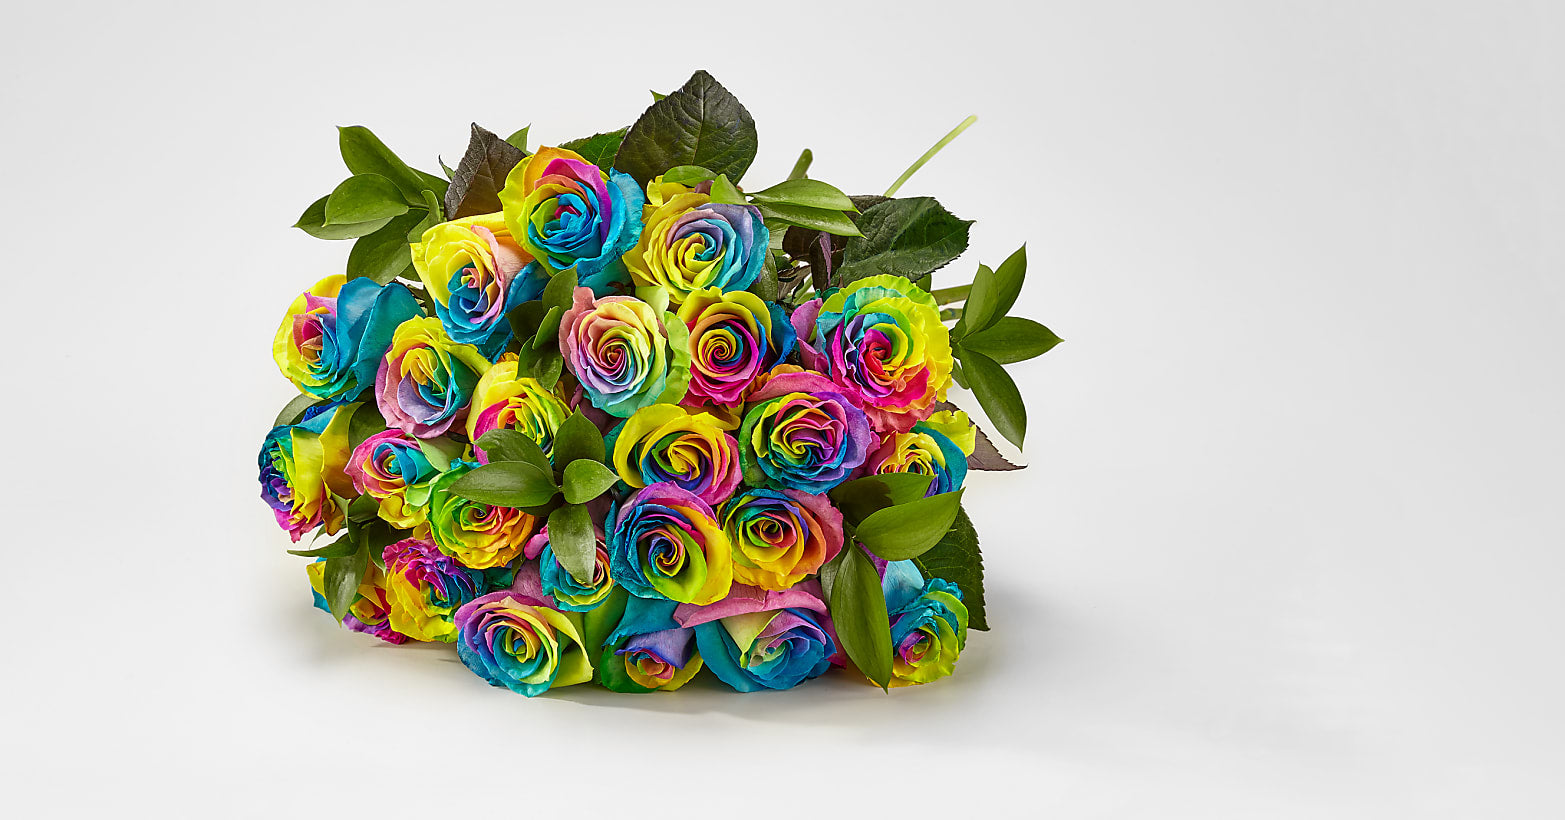 Unicorn Roses–24 Long Stemmed Tie Dyed Roses - Image 1 Of 3